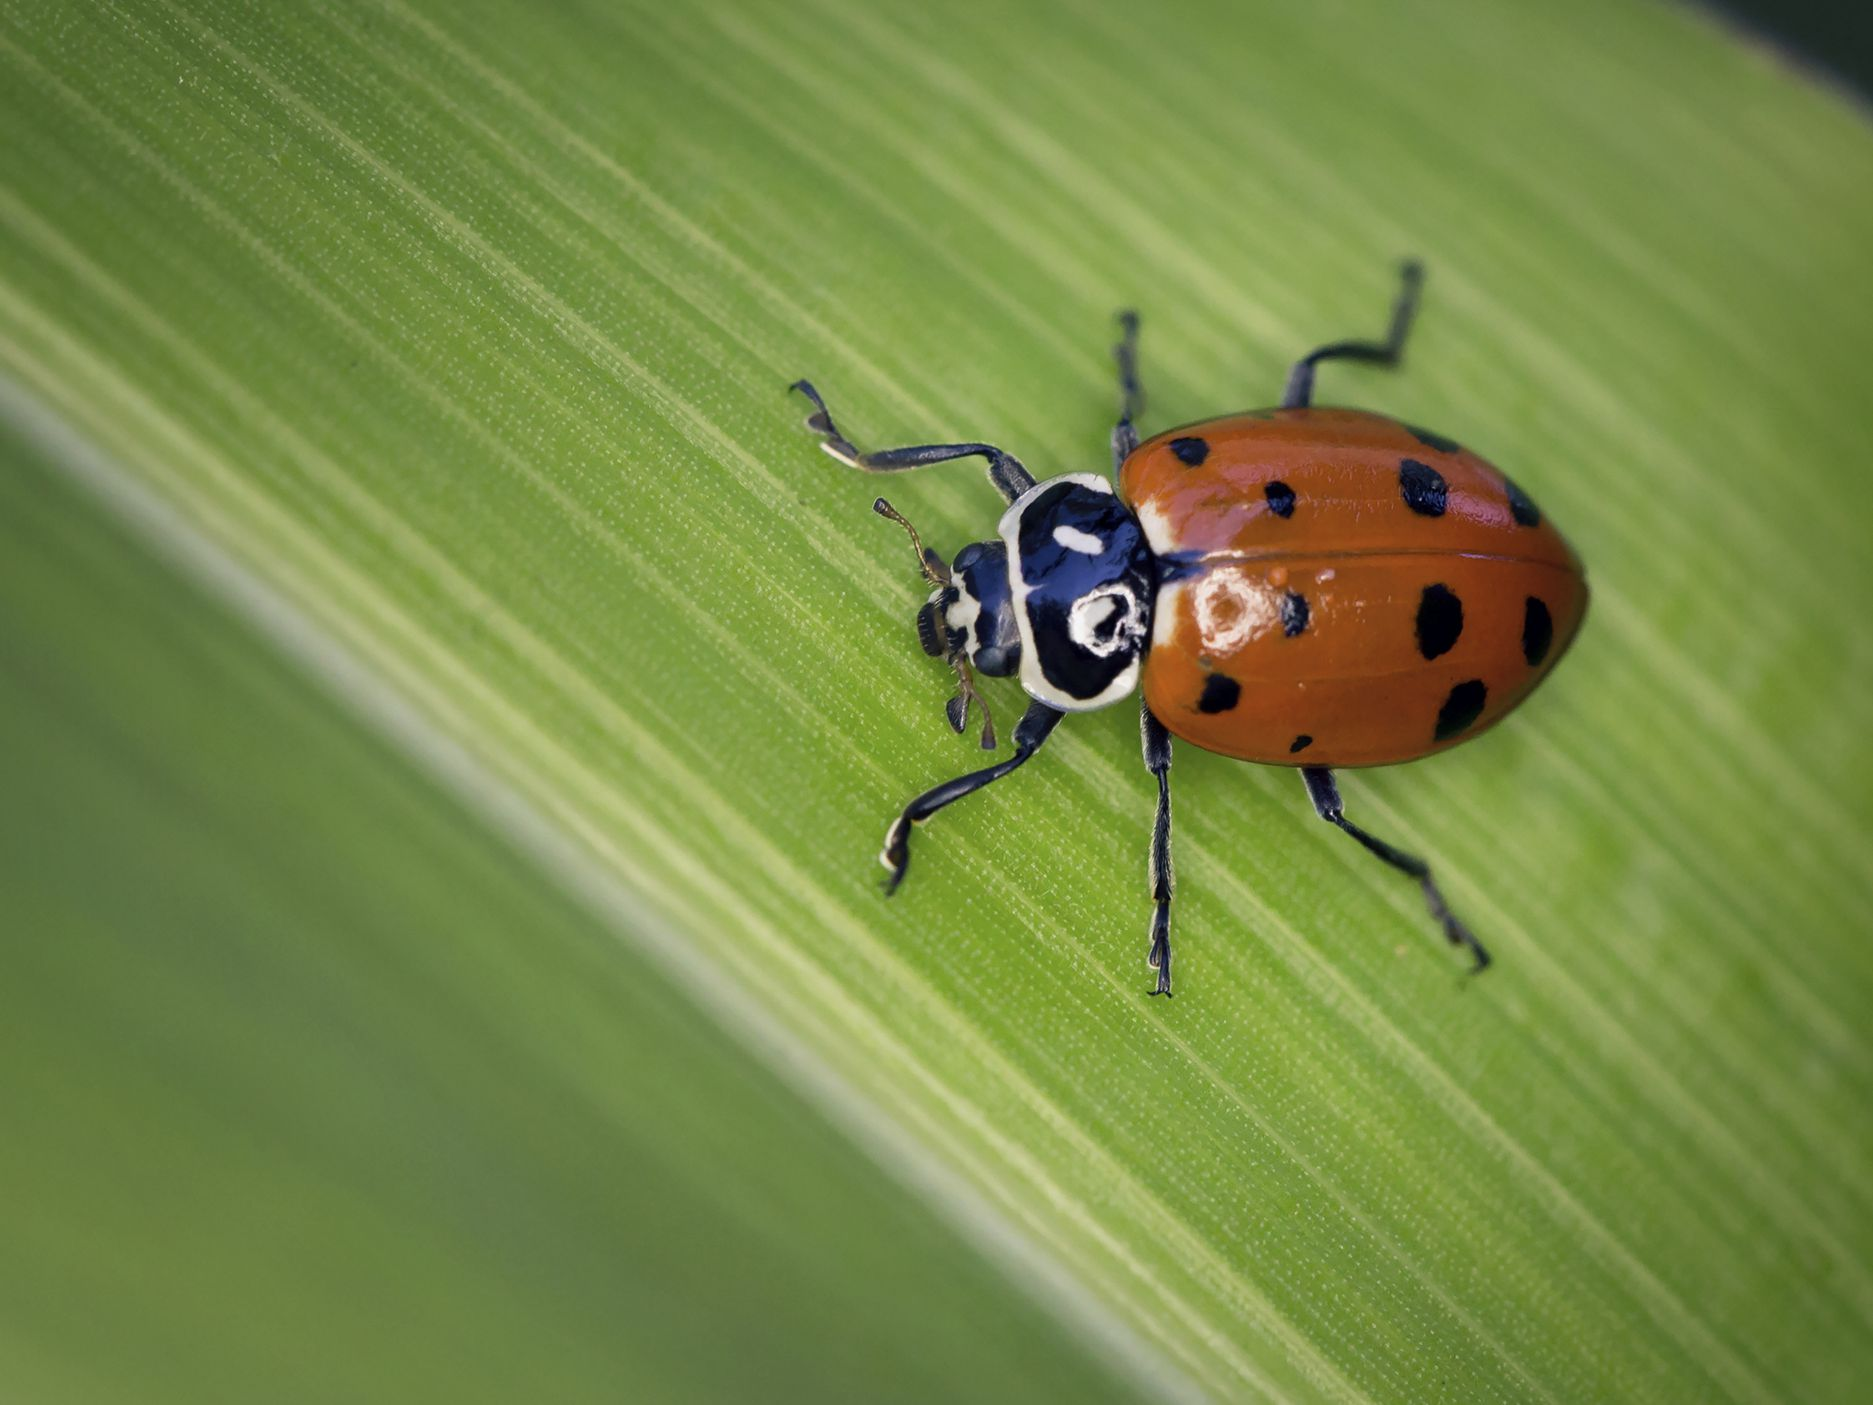 How to Attract Ladybugs